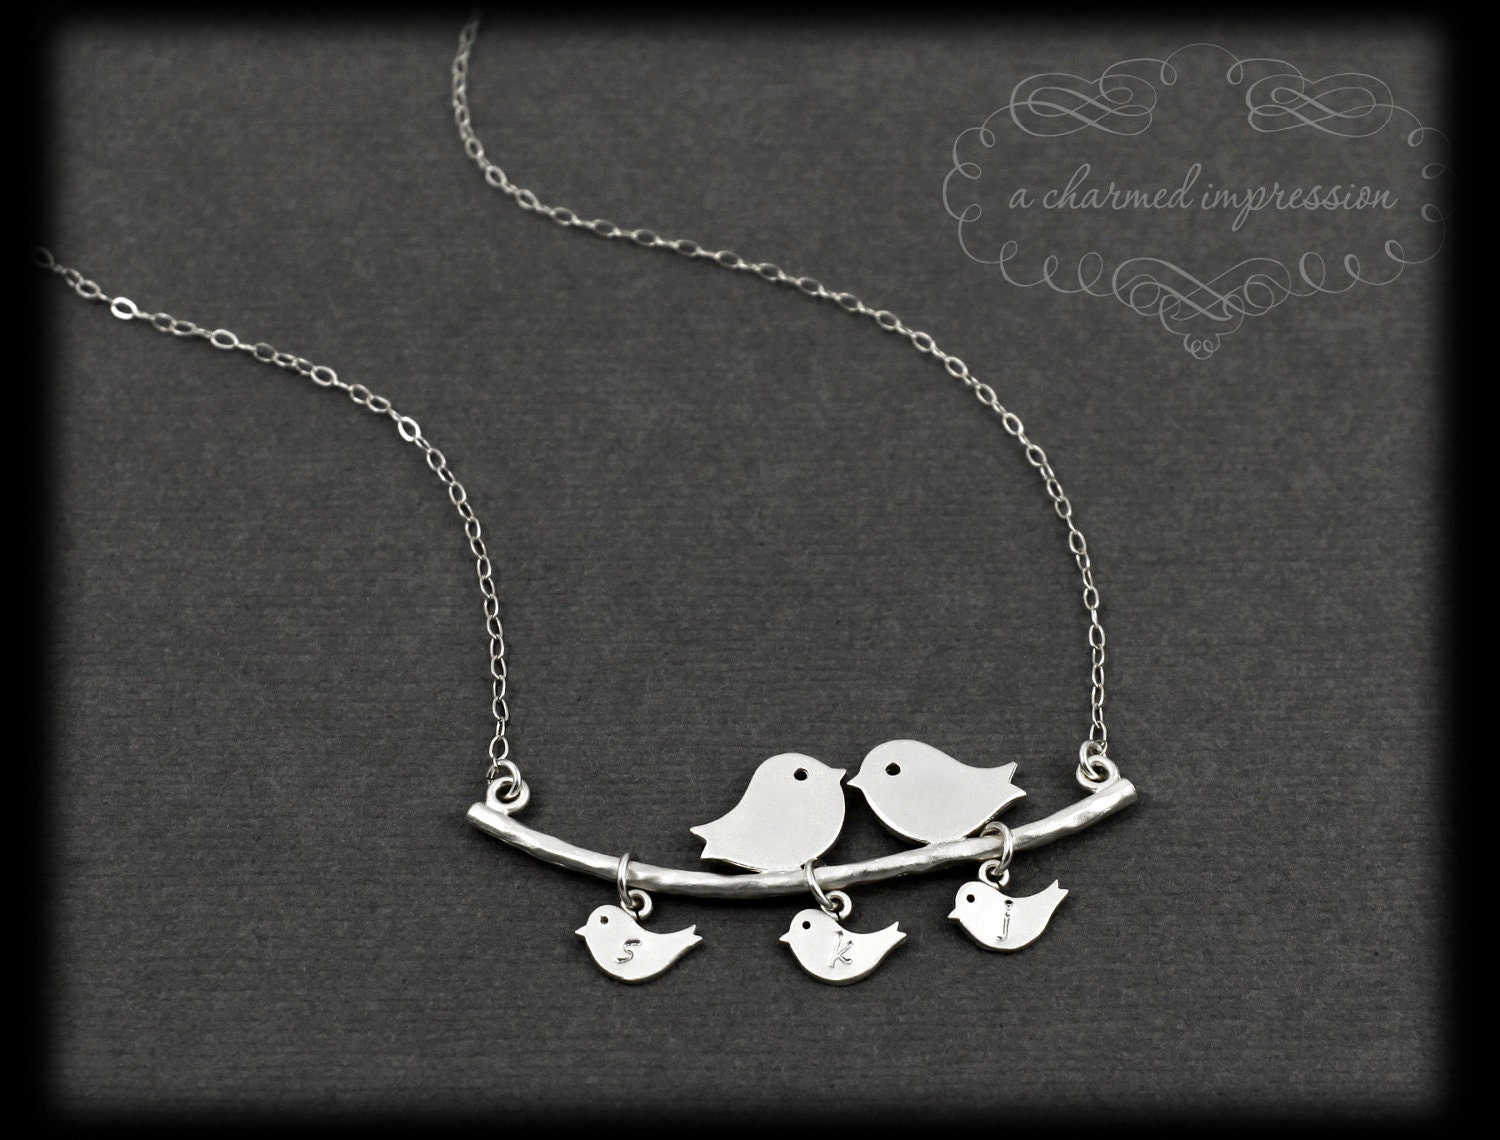 Personalized Mothers Necklace . 3 Baby Birds Necklace . Sterling Silver Bird Family Necklace . Bird Family Tree . OUR LITTLE FAMILY - ACharmedImpression